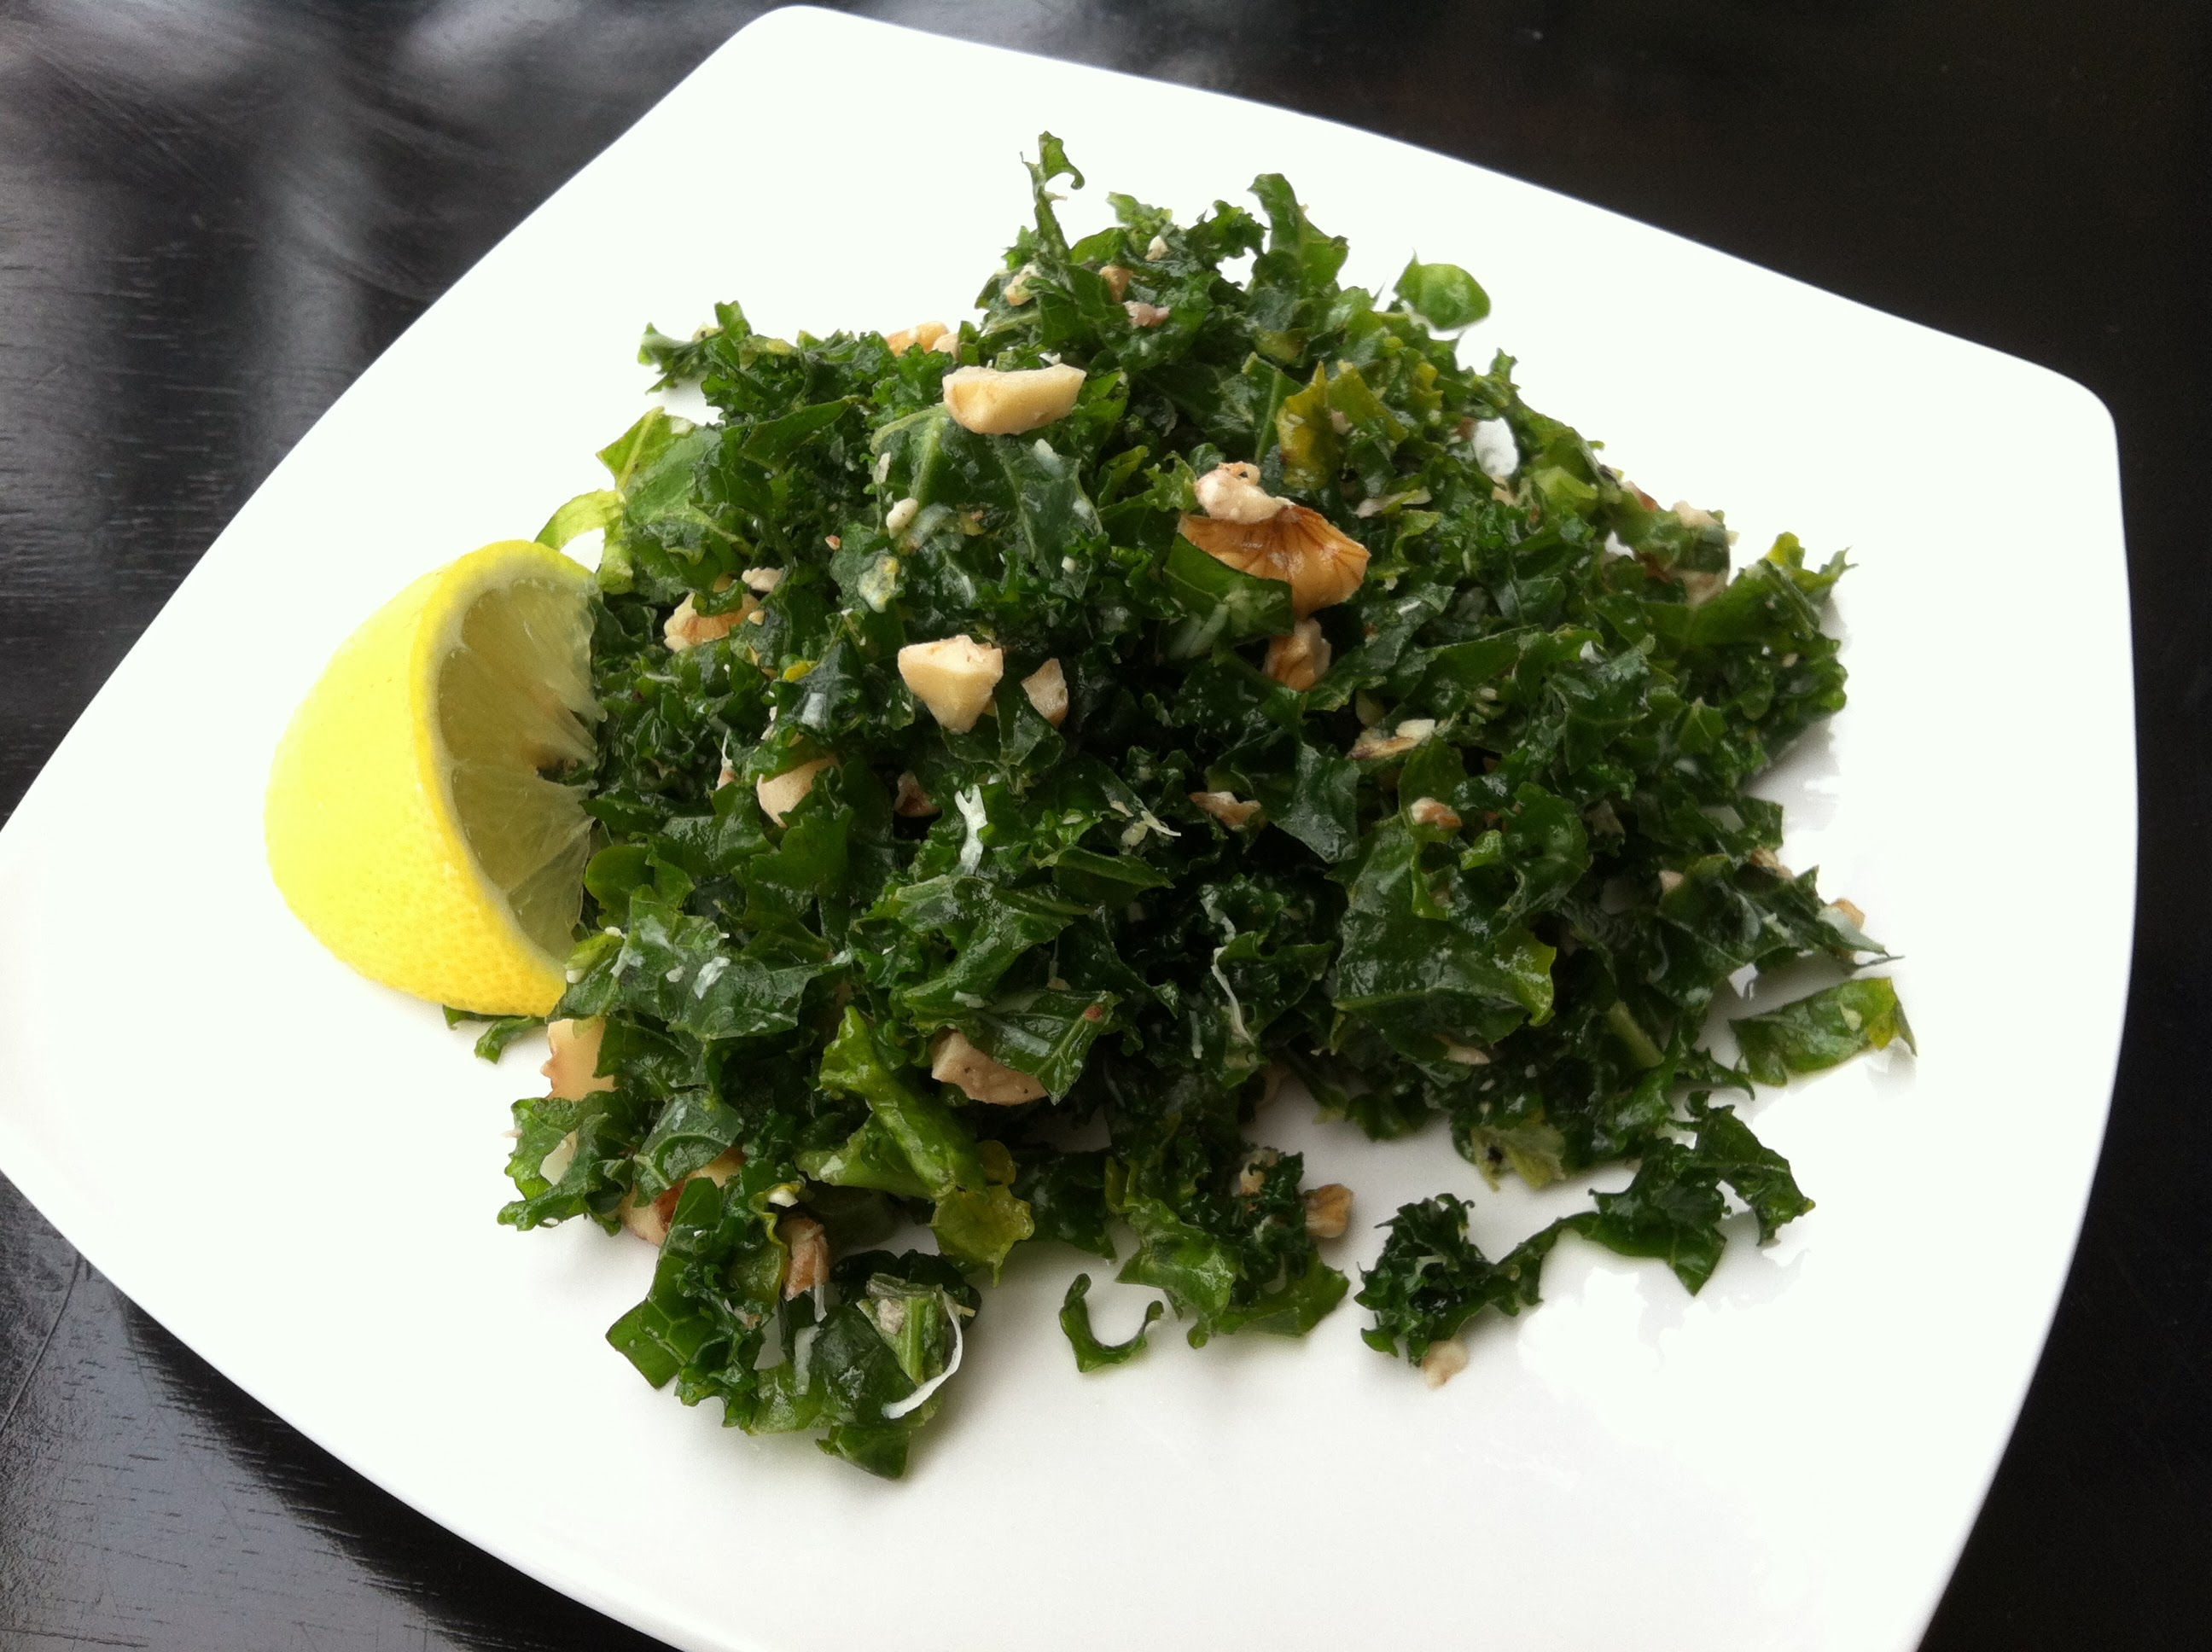 Lemon Kale Salad Recipe